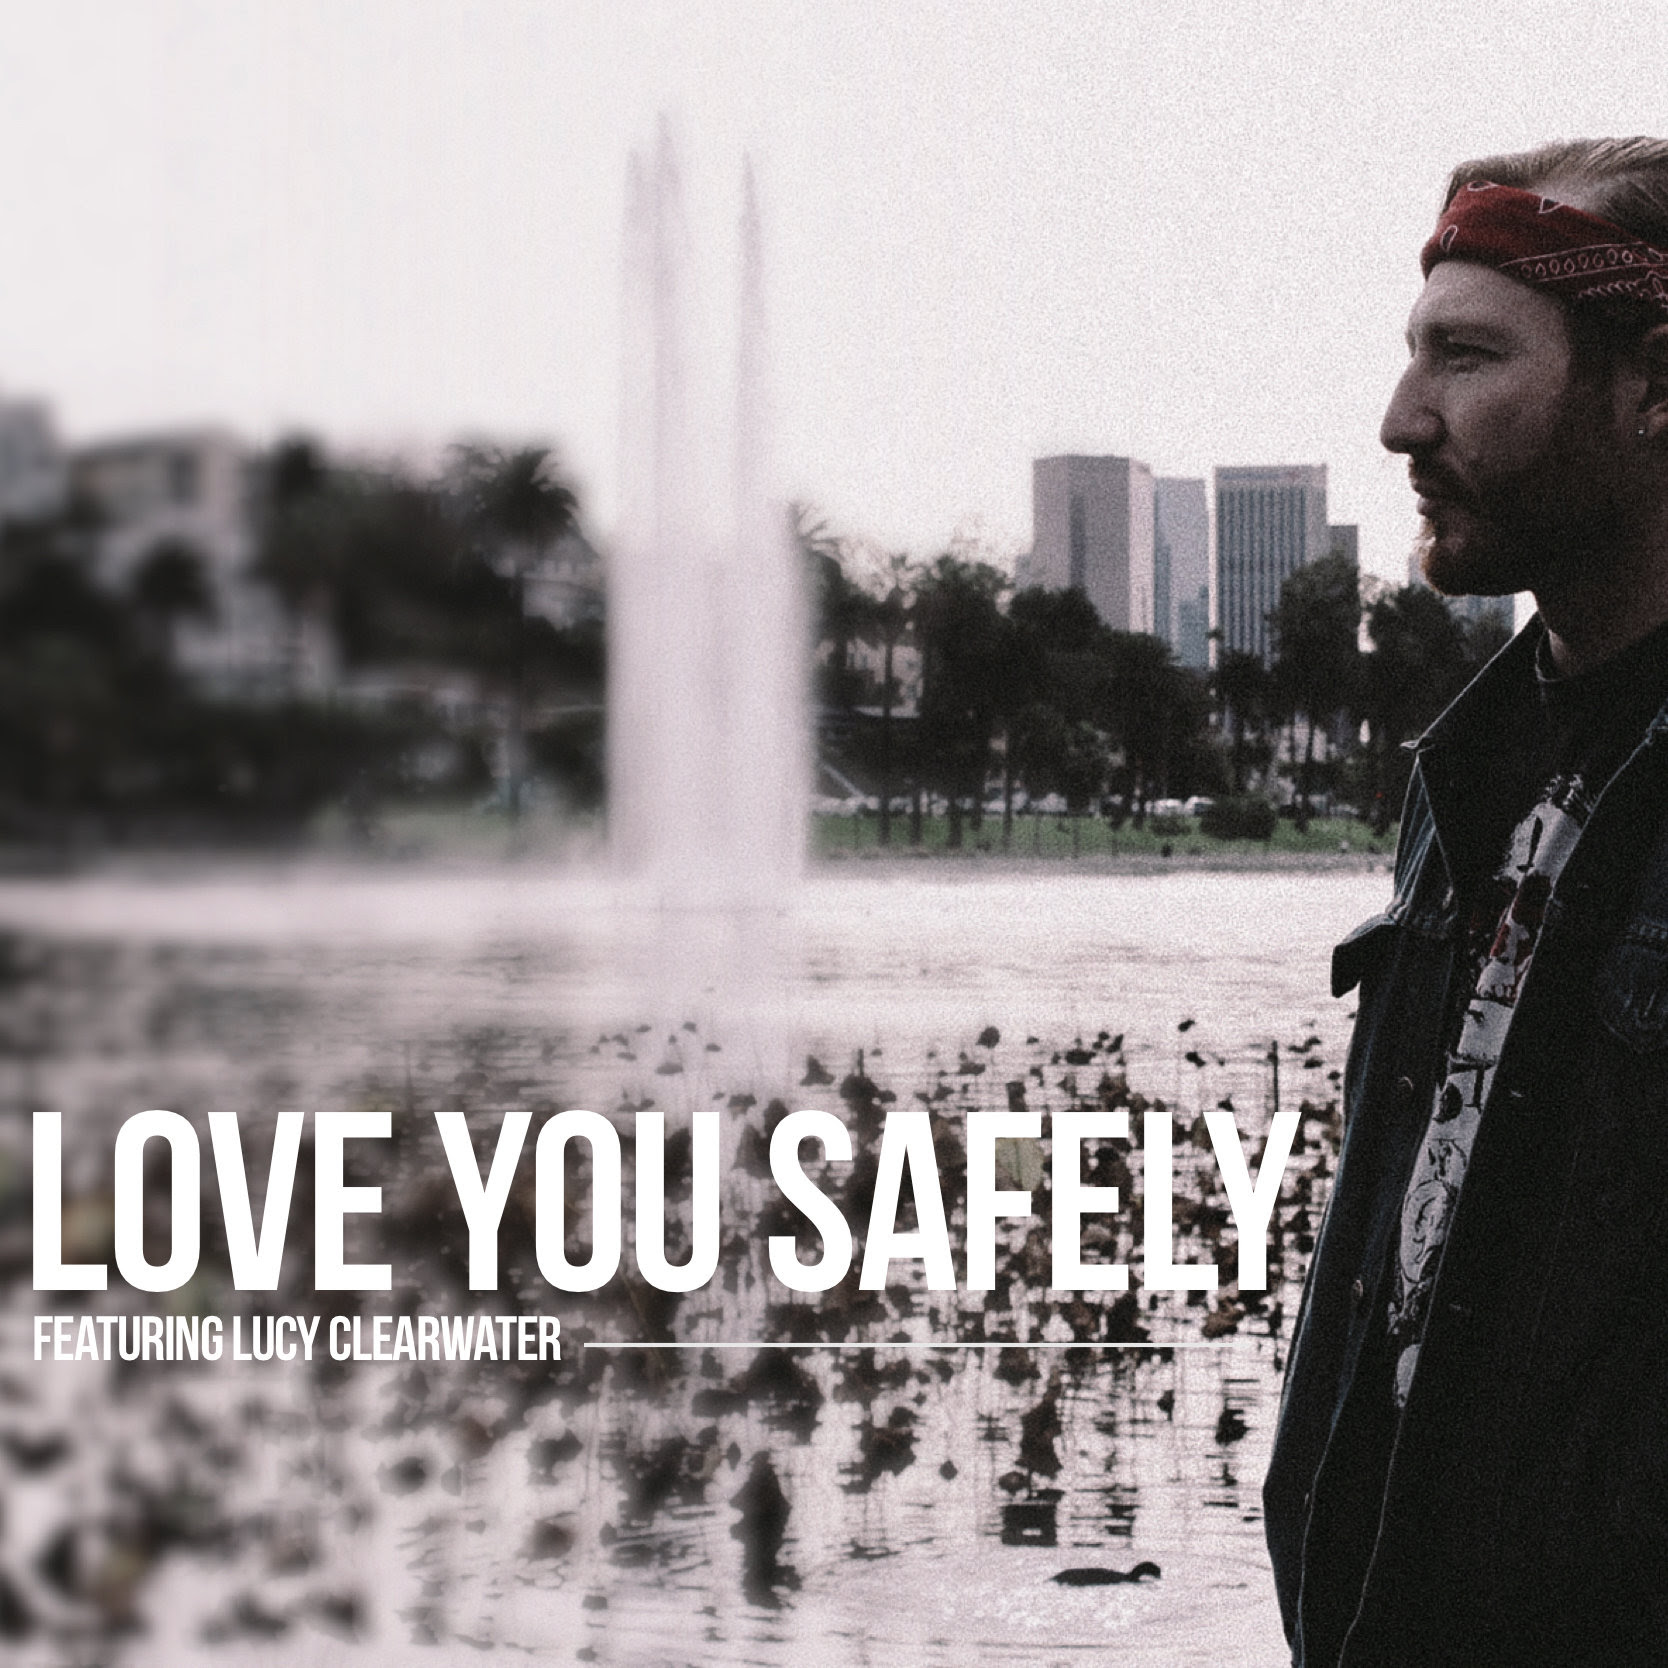 Love You Safely - Joe Marson Ft. Lucy Clearwater